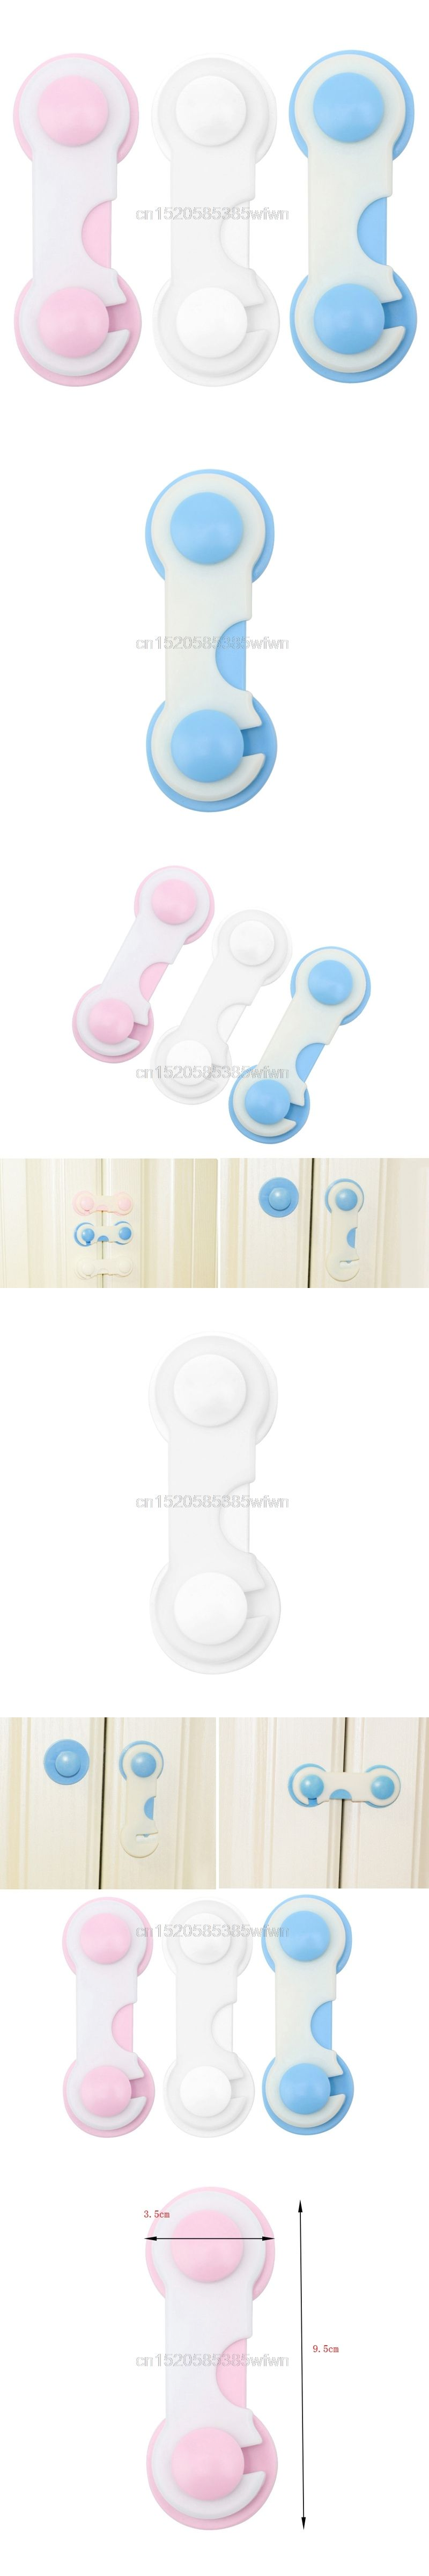 Pcs baby kids safety drawer cabinet door refrigerator security lock